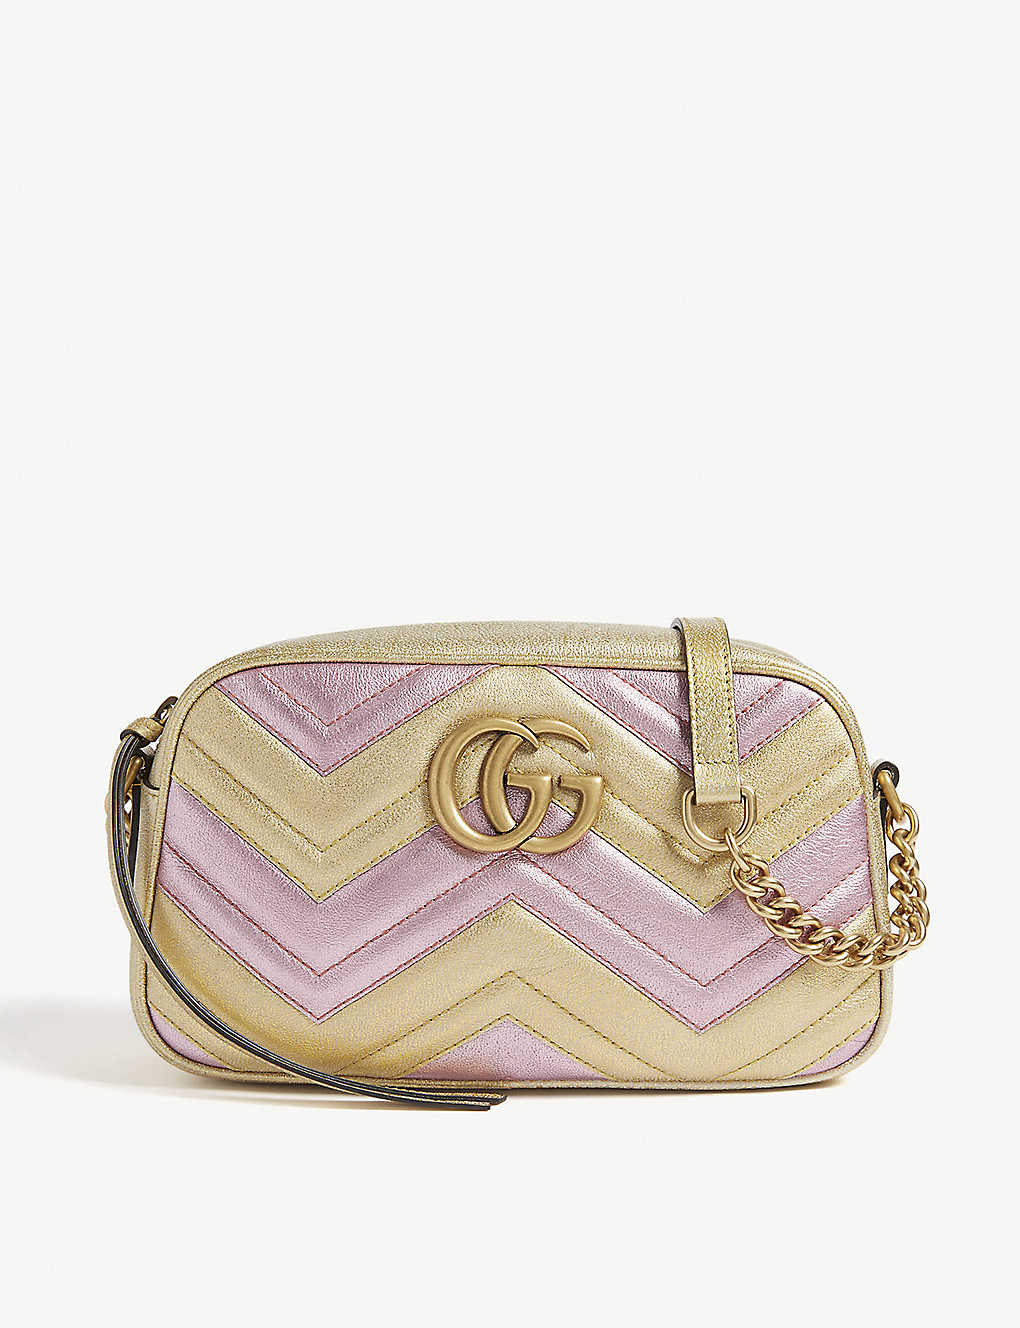 727857d0c4a GG Marmont metallic quilted leather shoulder bag - Gold pink ...